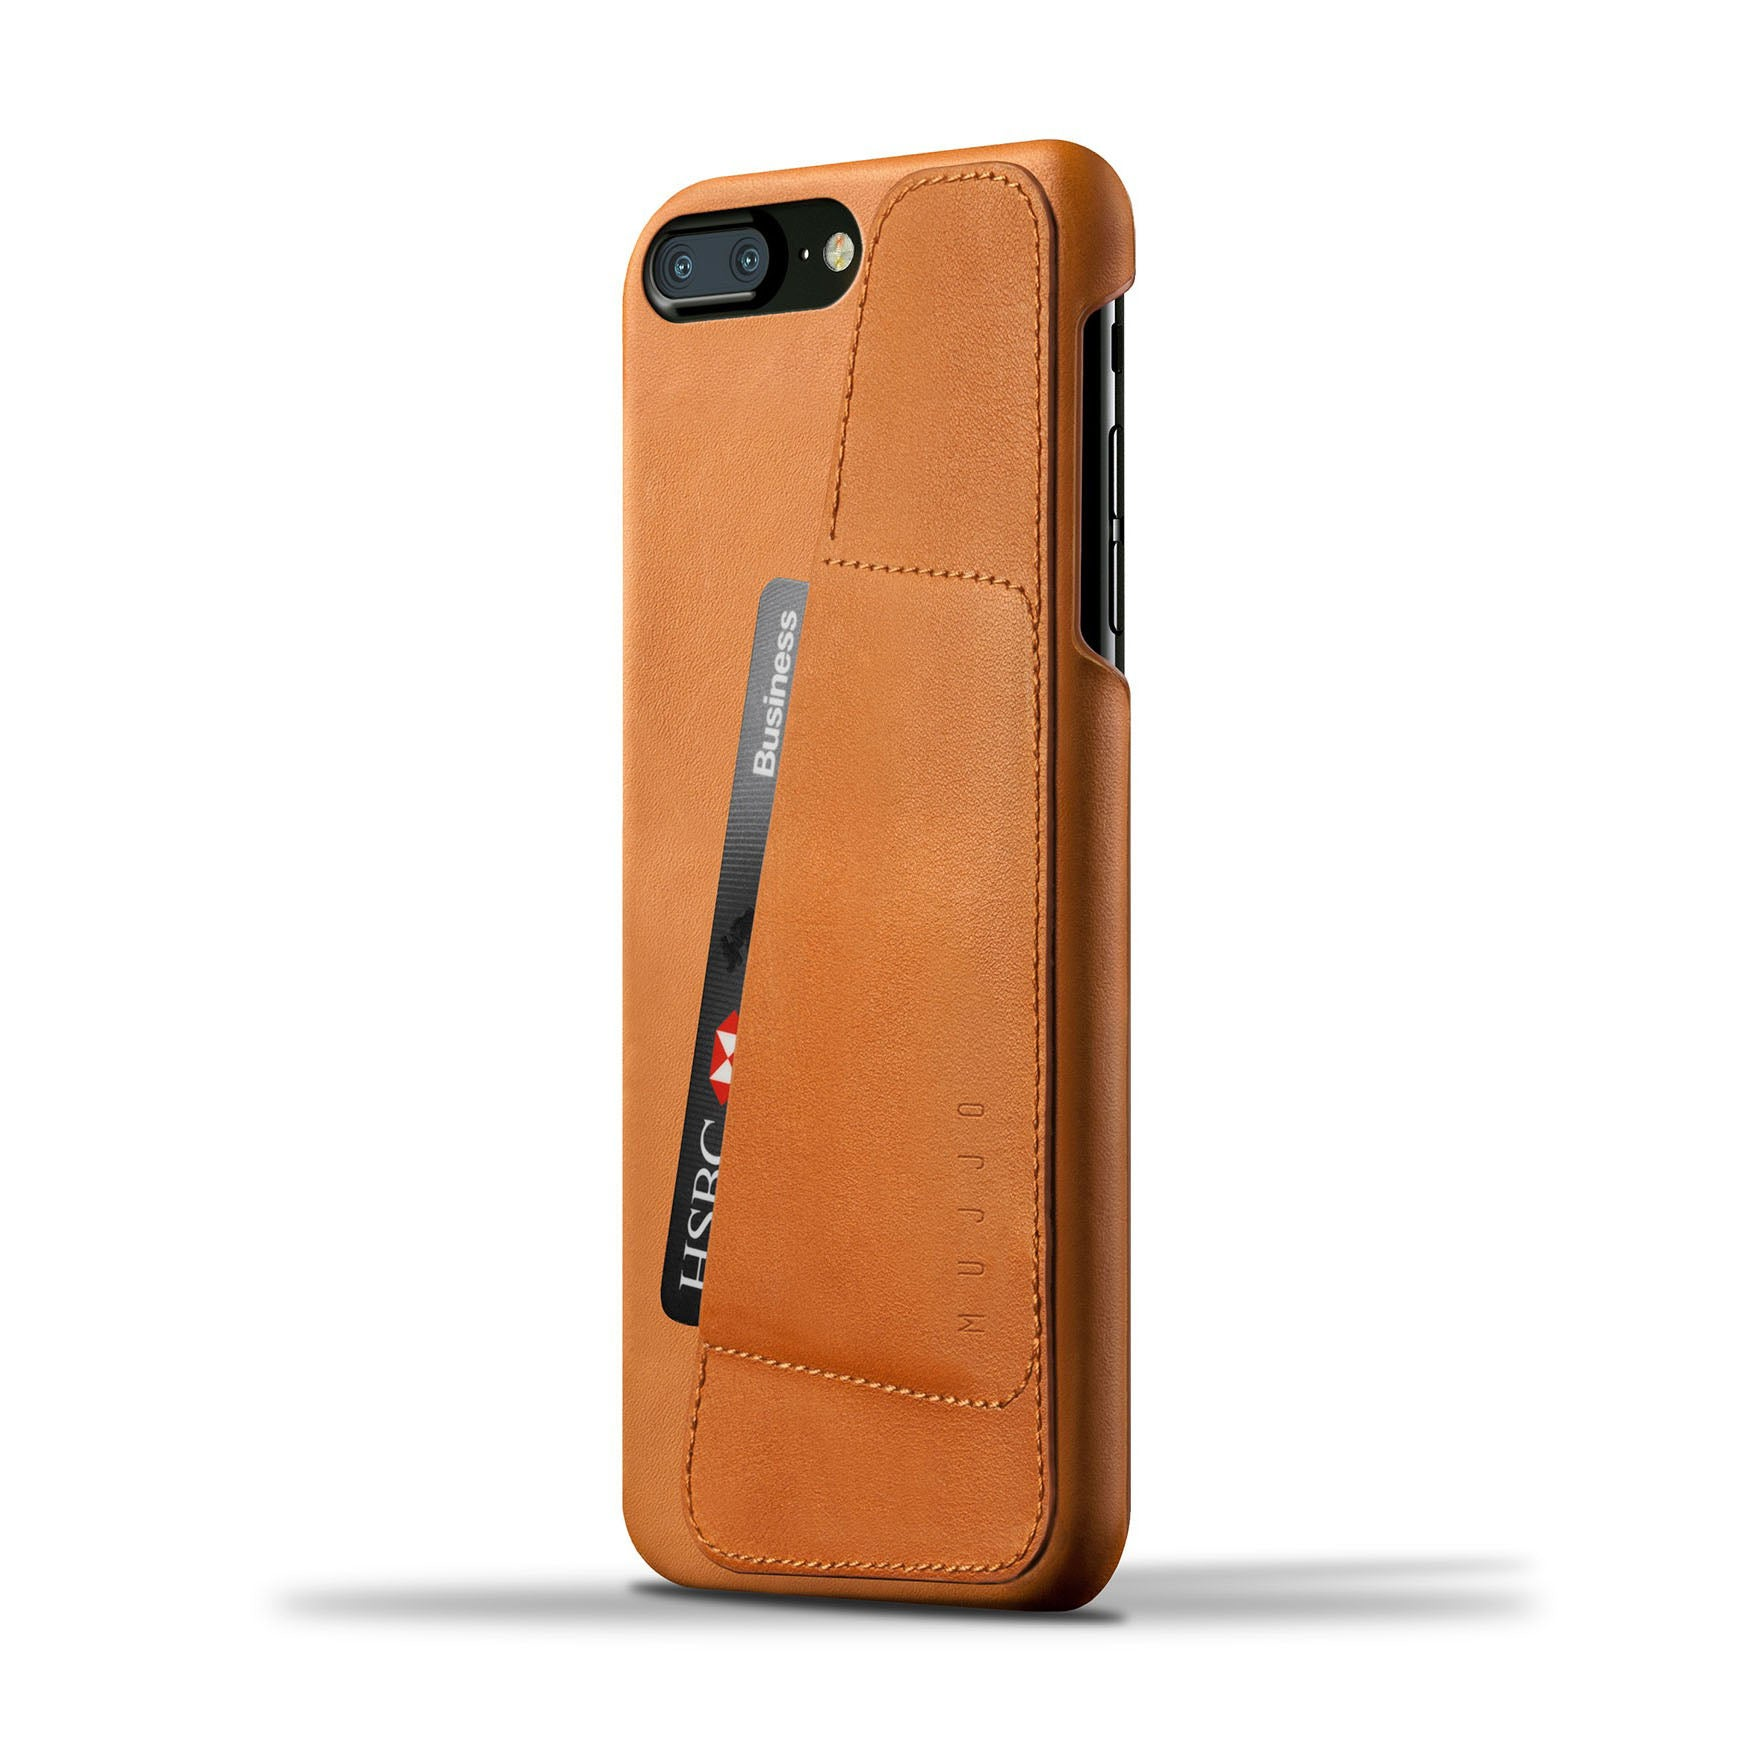 Ontwerp je eigen Mujjo iPhone 7/8 Wallet Case